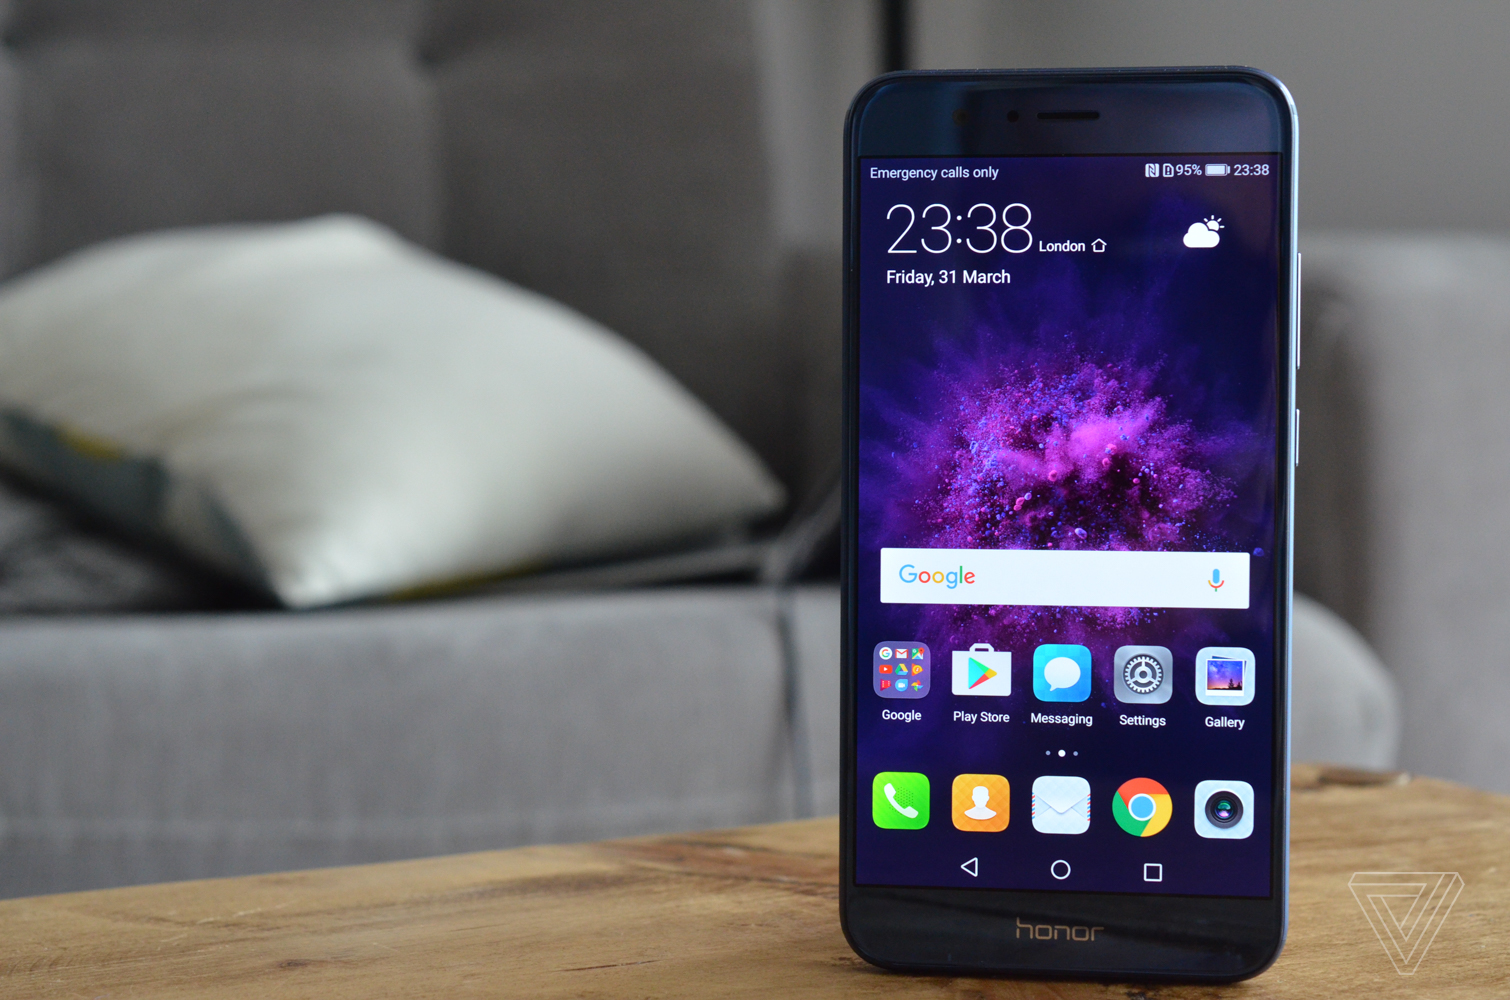 The Honor 8 Pro is a Huawei P10 with stronger specs and a smaller